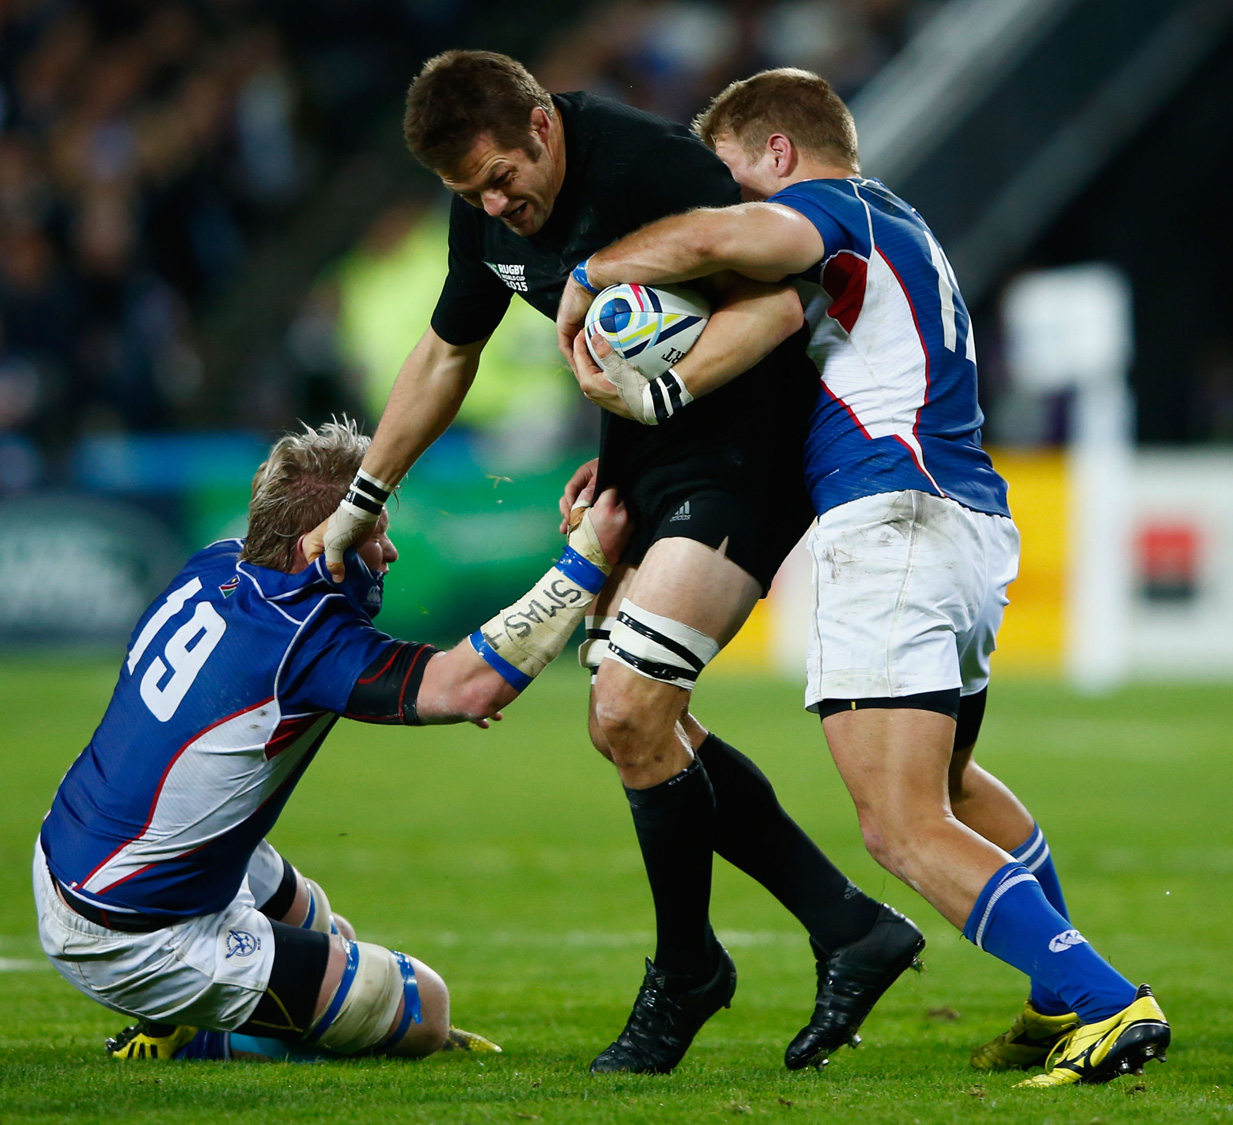 South West Rugby Cups: Group C: Rugby World Cup 2015